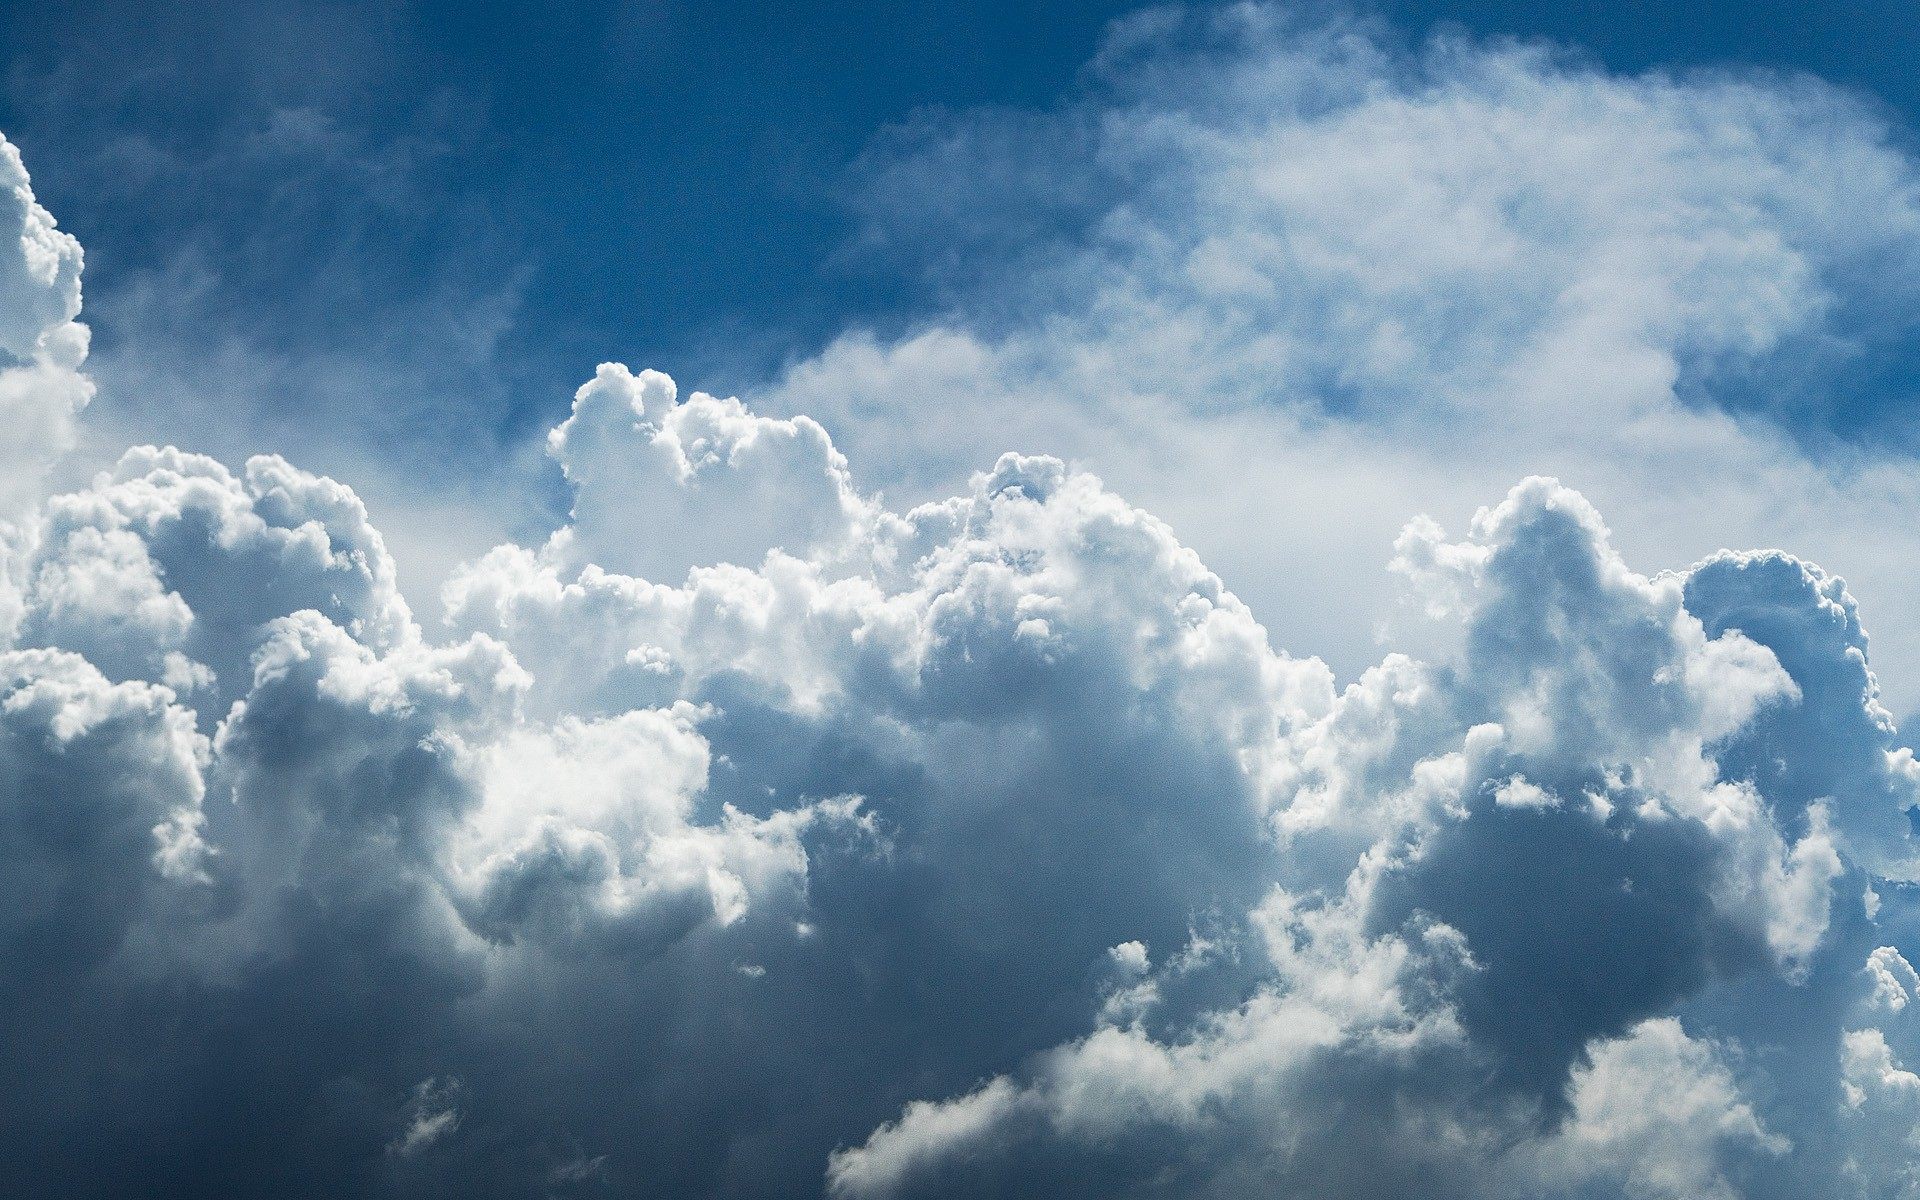 47 Wallpaper With Clouds On Wallpapersafari